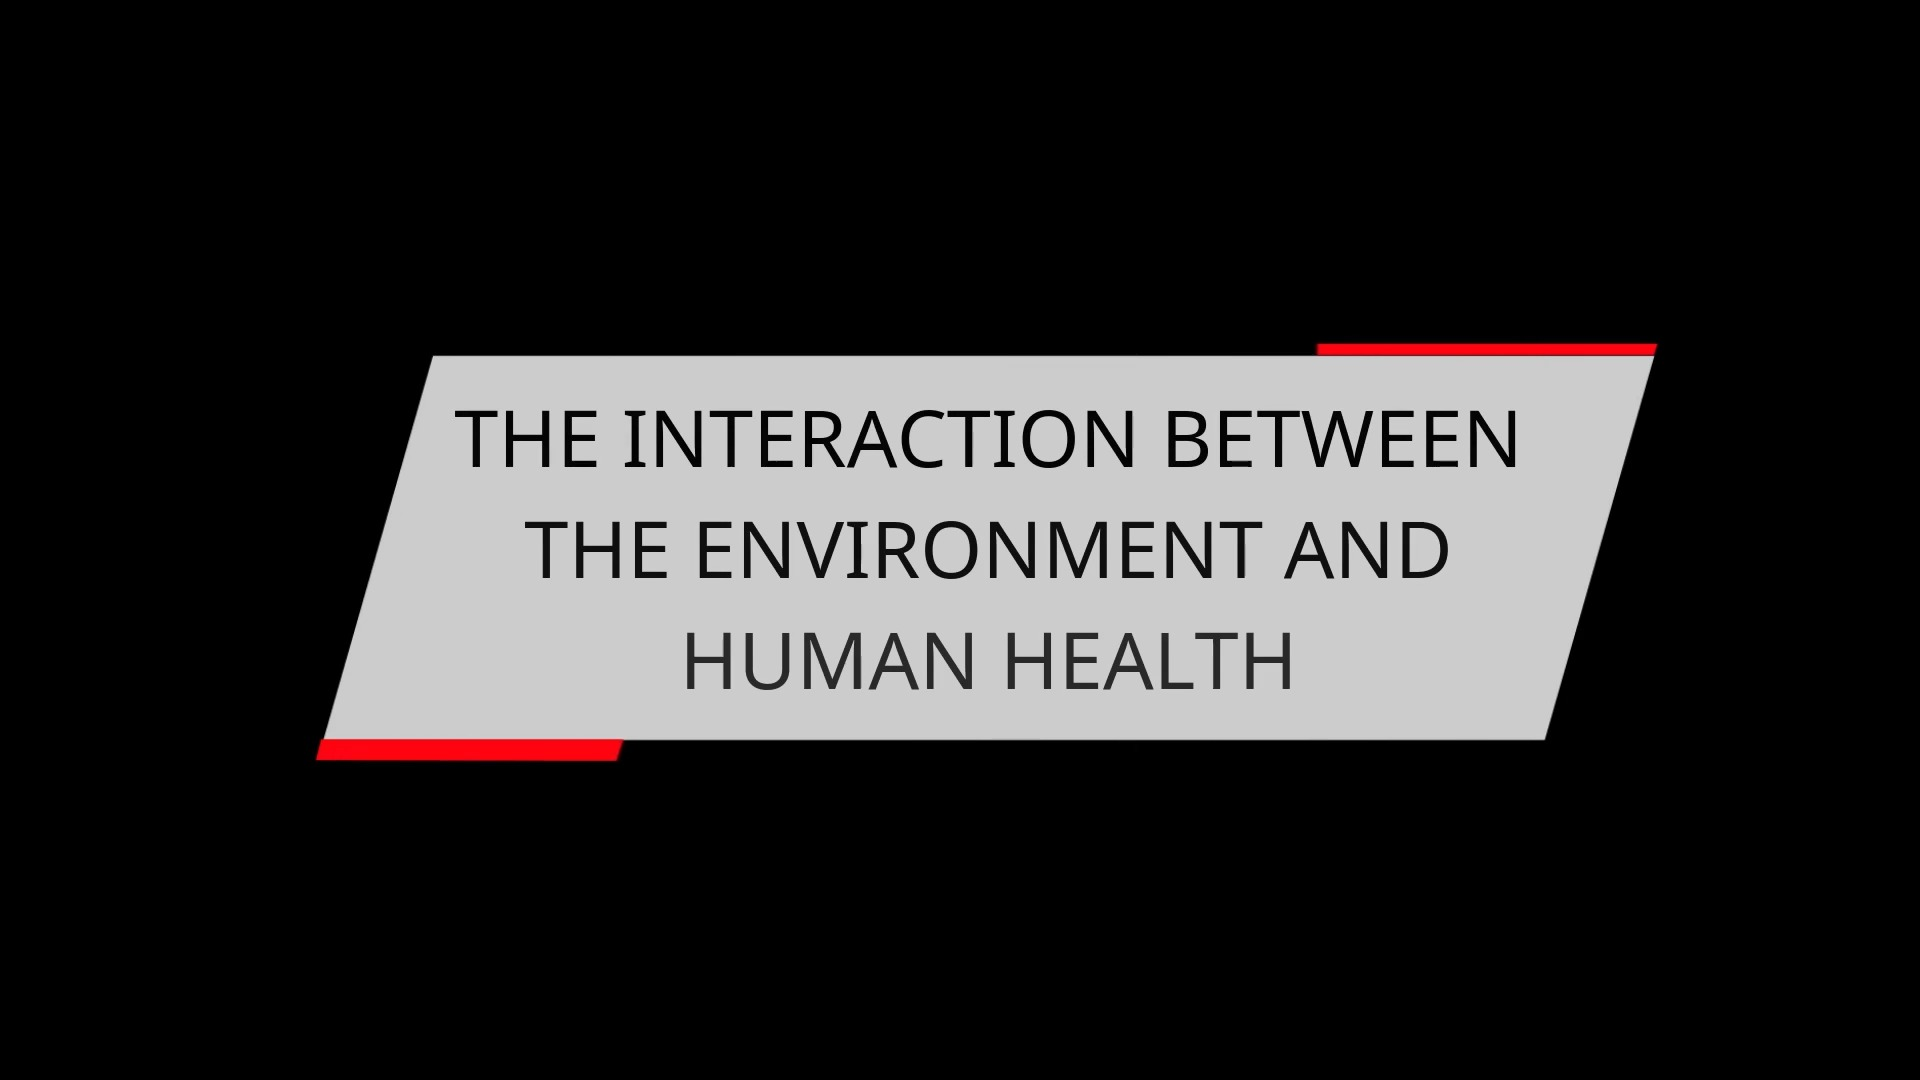 THE INTERACTION BETWEEN THE ENVIRONMENT AND HUMAN HEALTH